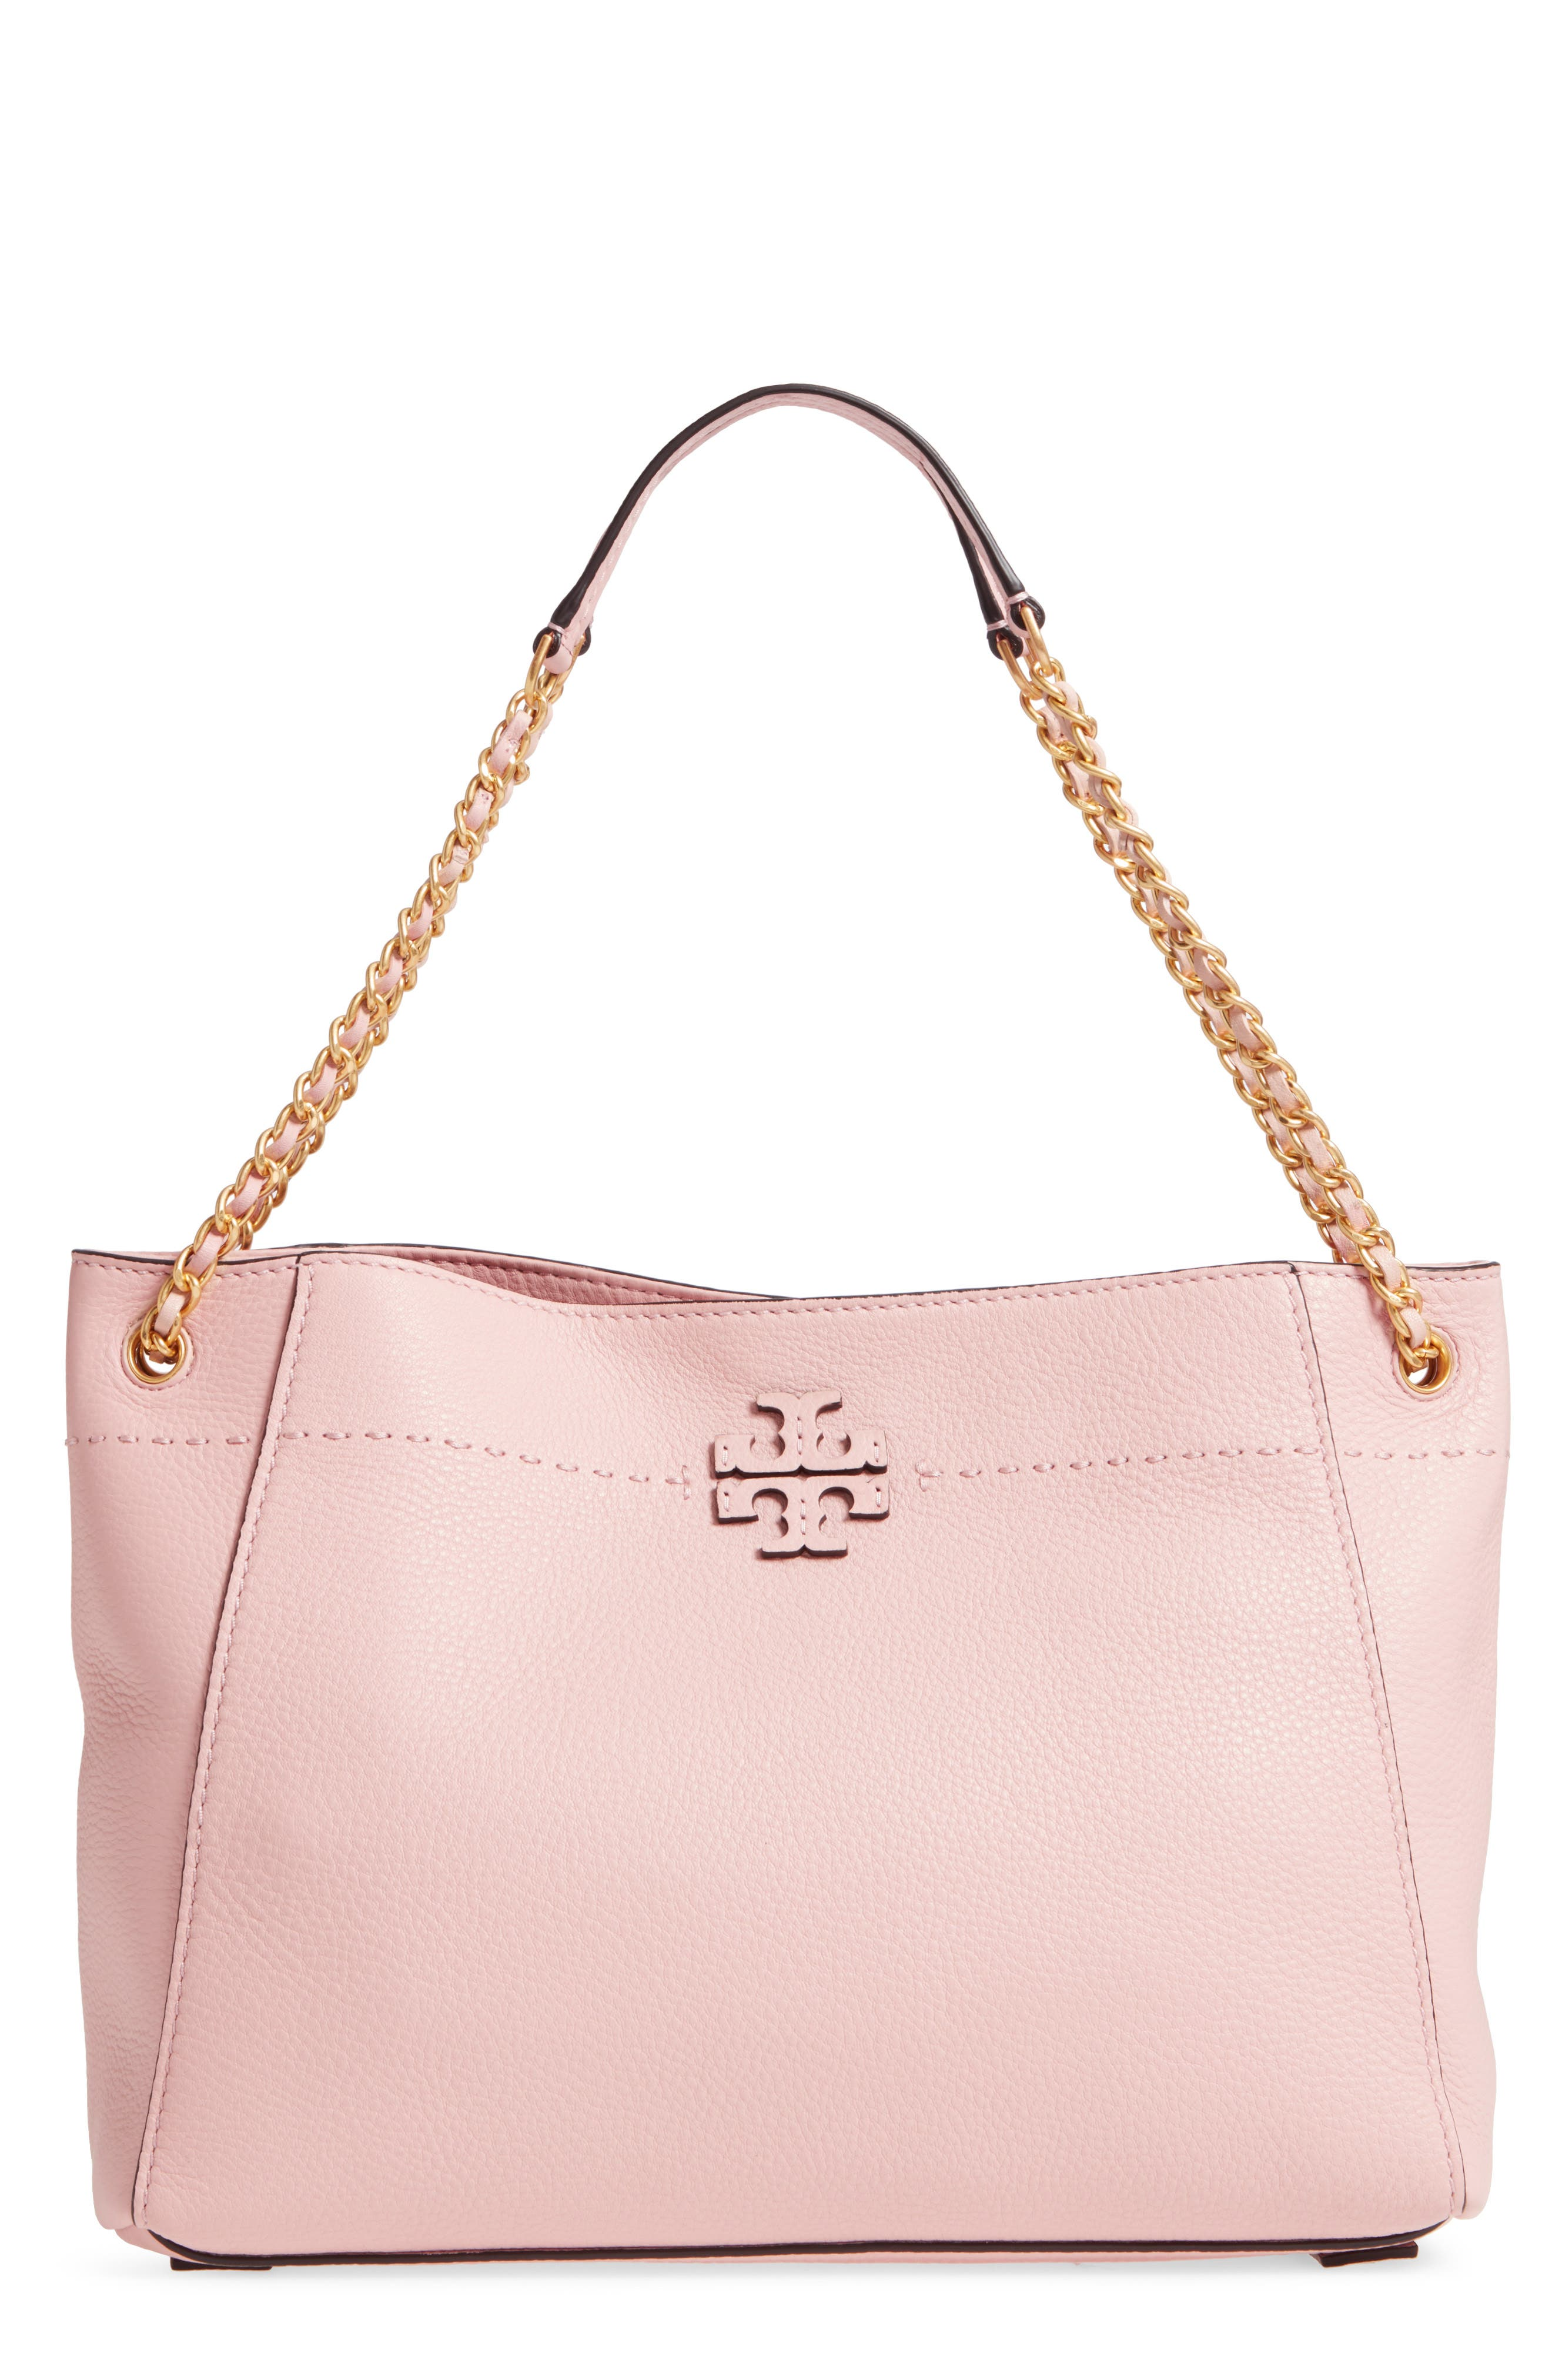 Alternate Image 1 Selected - Tory Burch McGraw Slouchy Leather Shoulder Bag